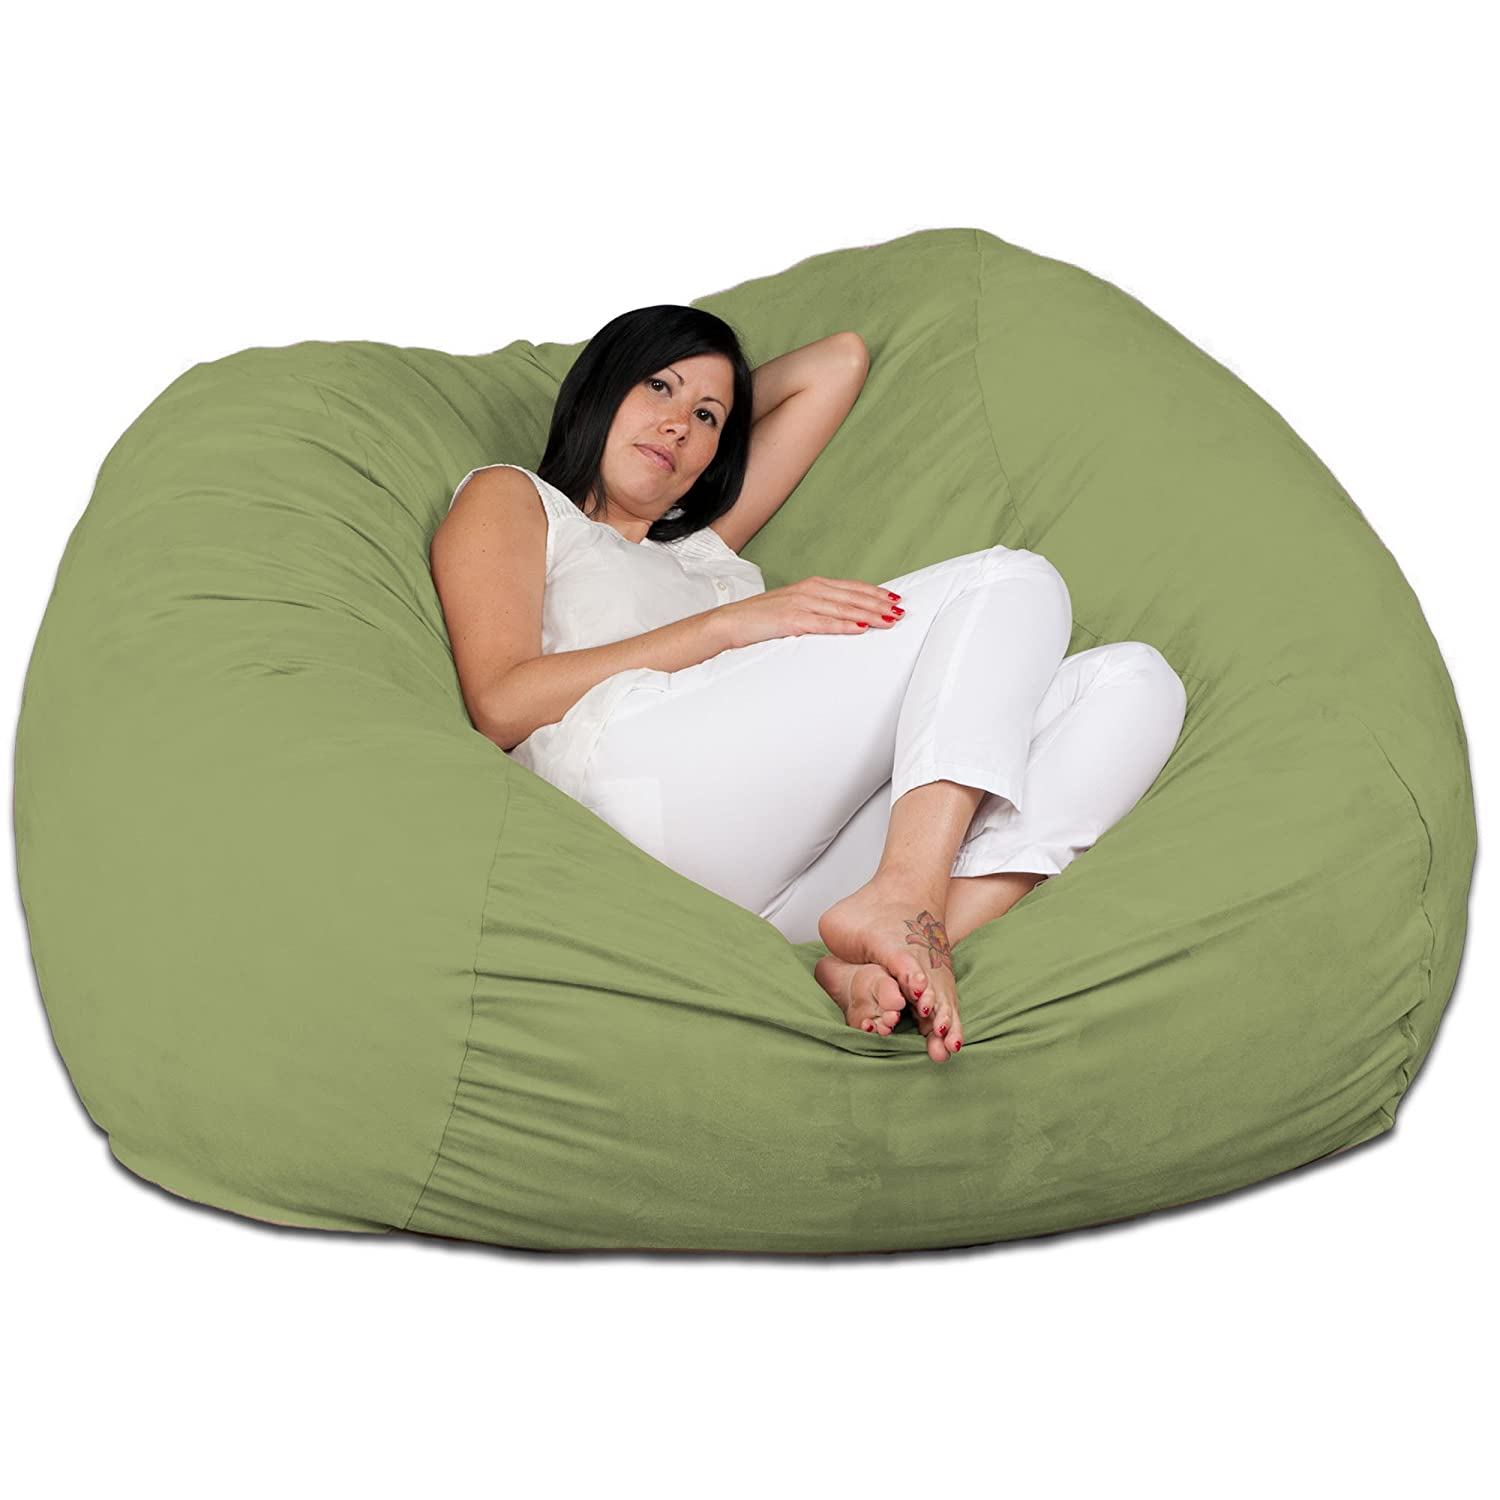 Amazon Fugu 5 Foot Bean Bag Chair Lime Kitchen & Dining